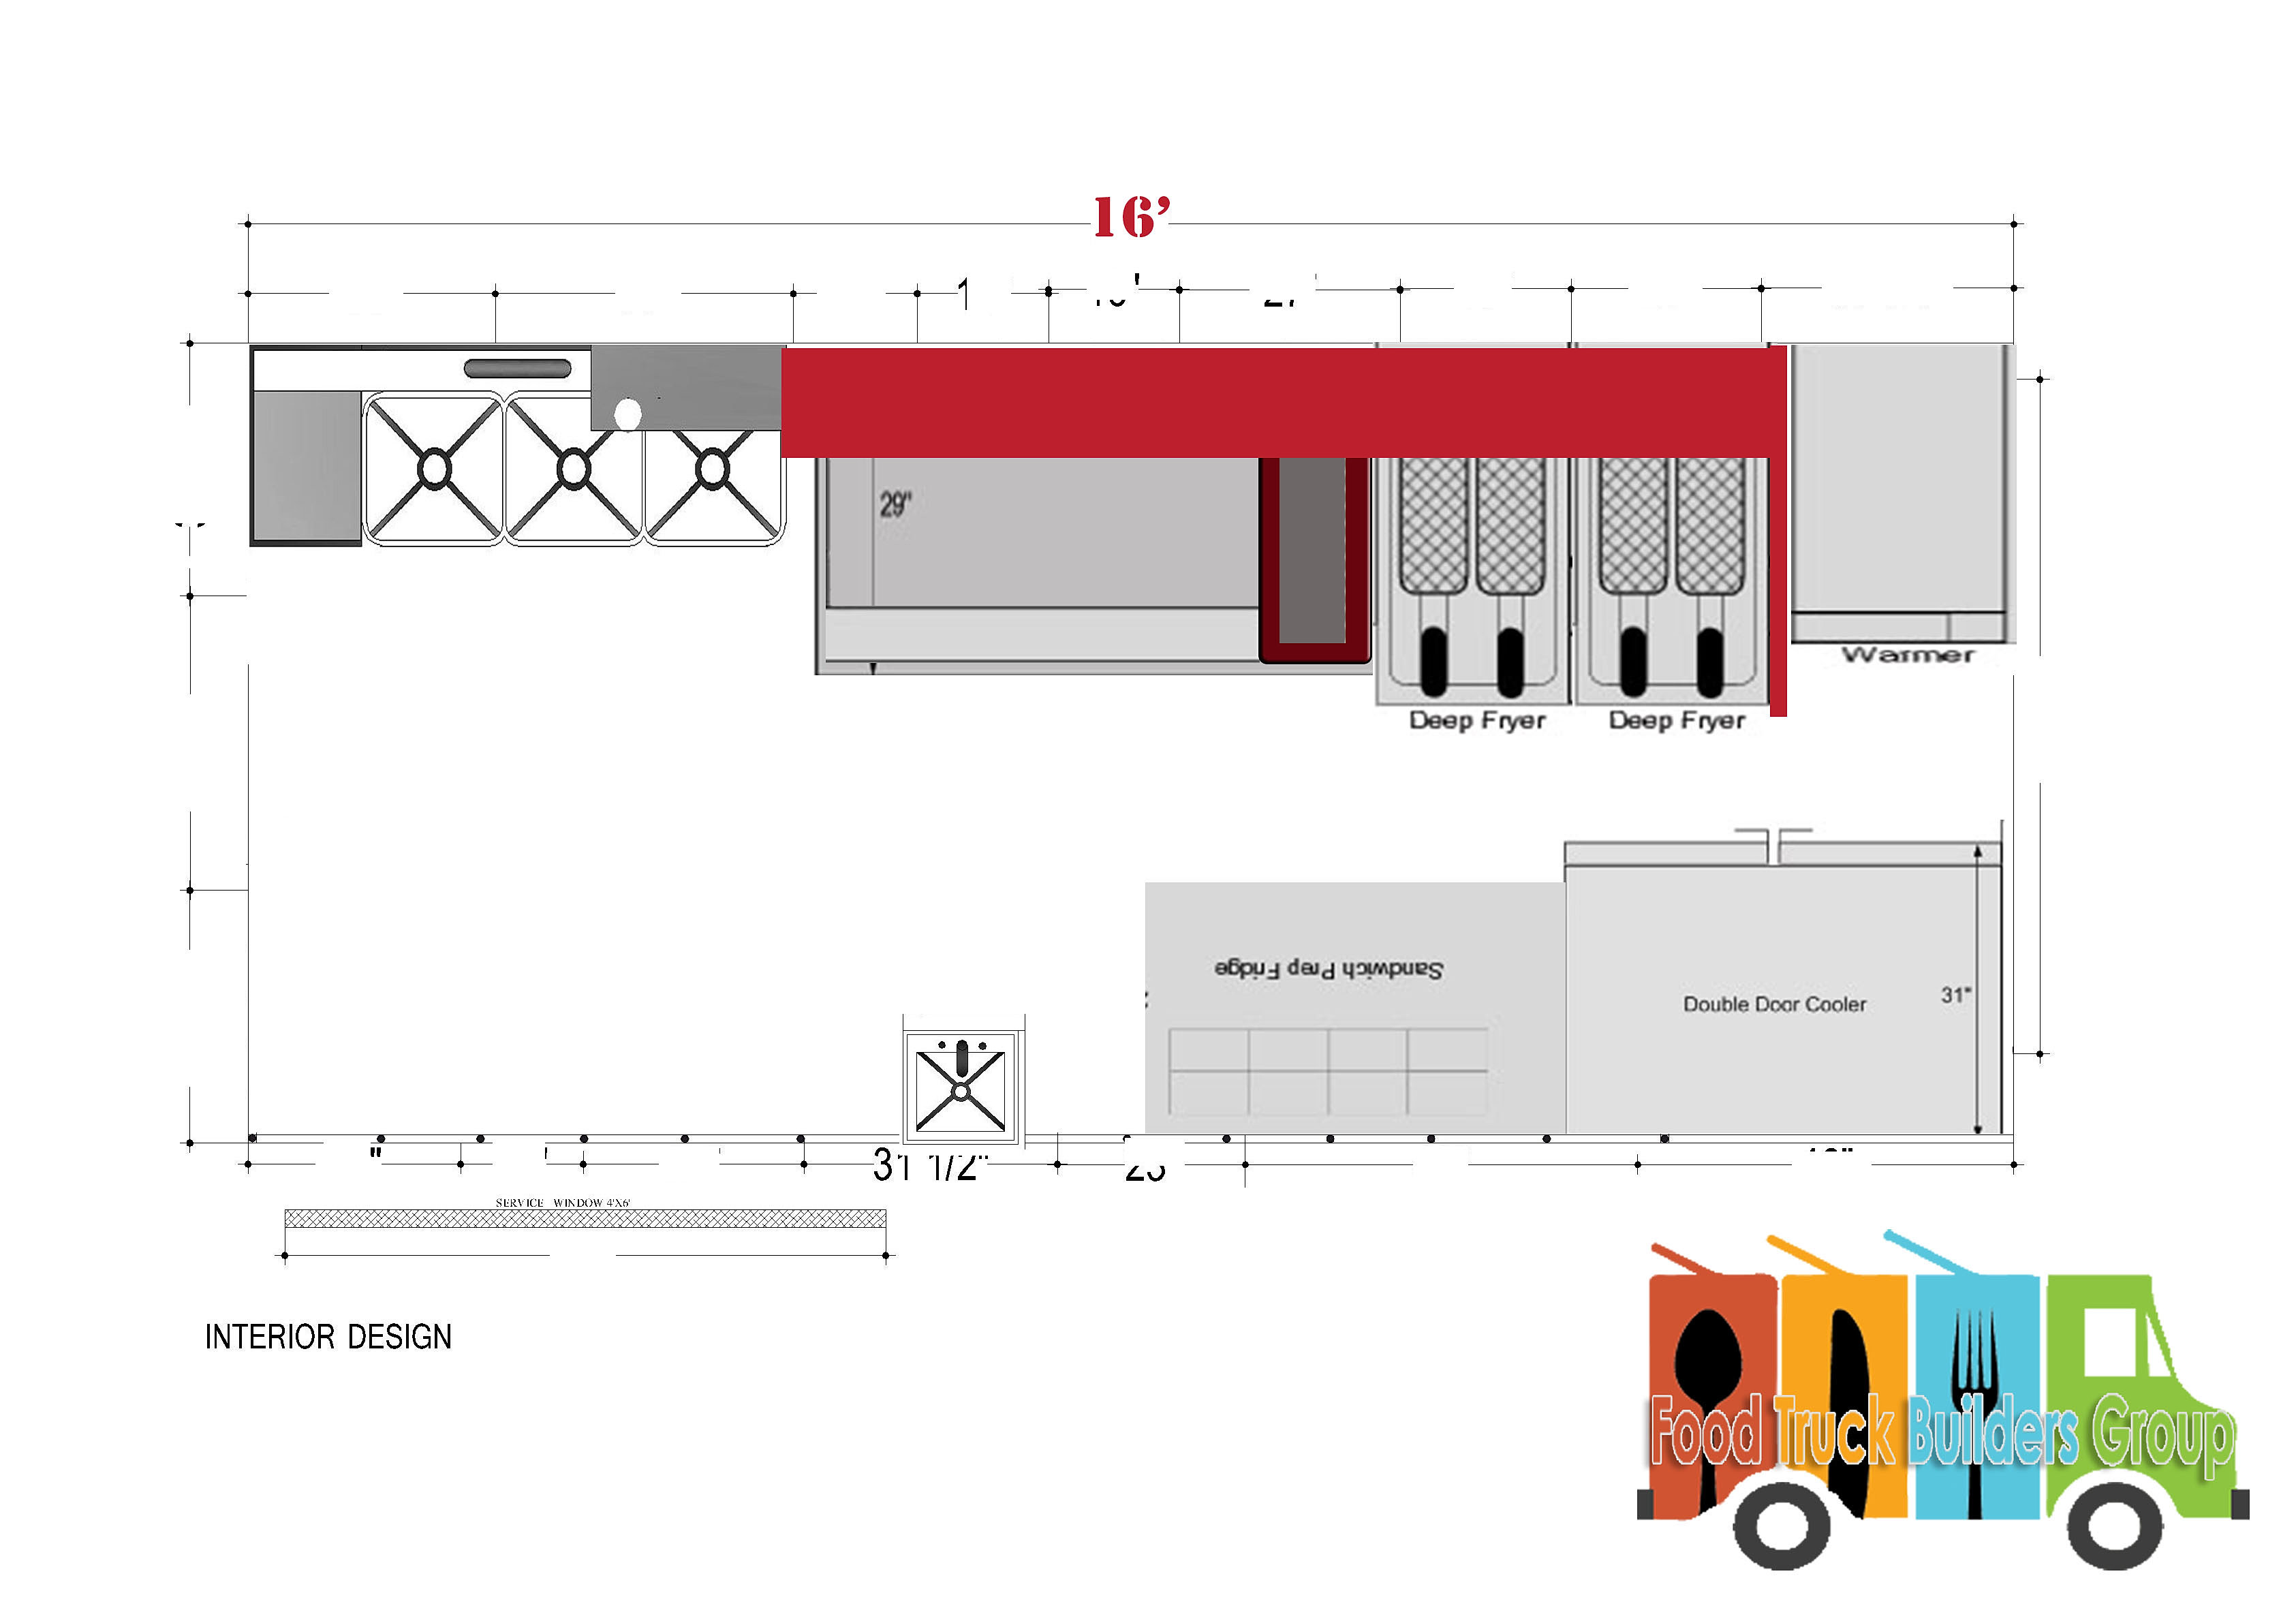 Food truck burger food truck layout for Food truck layout